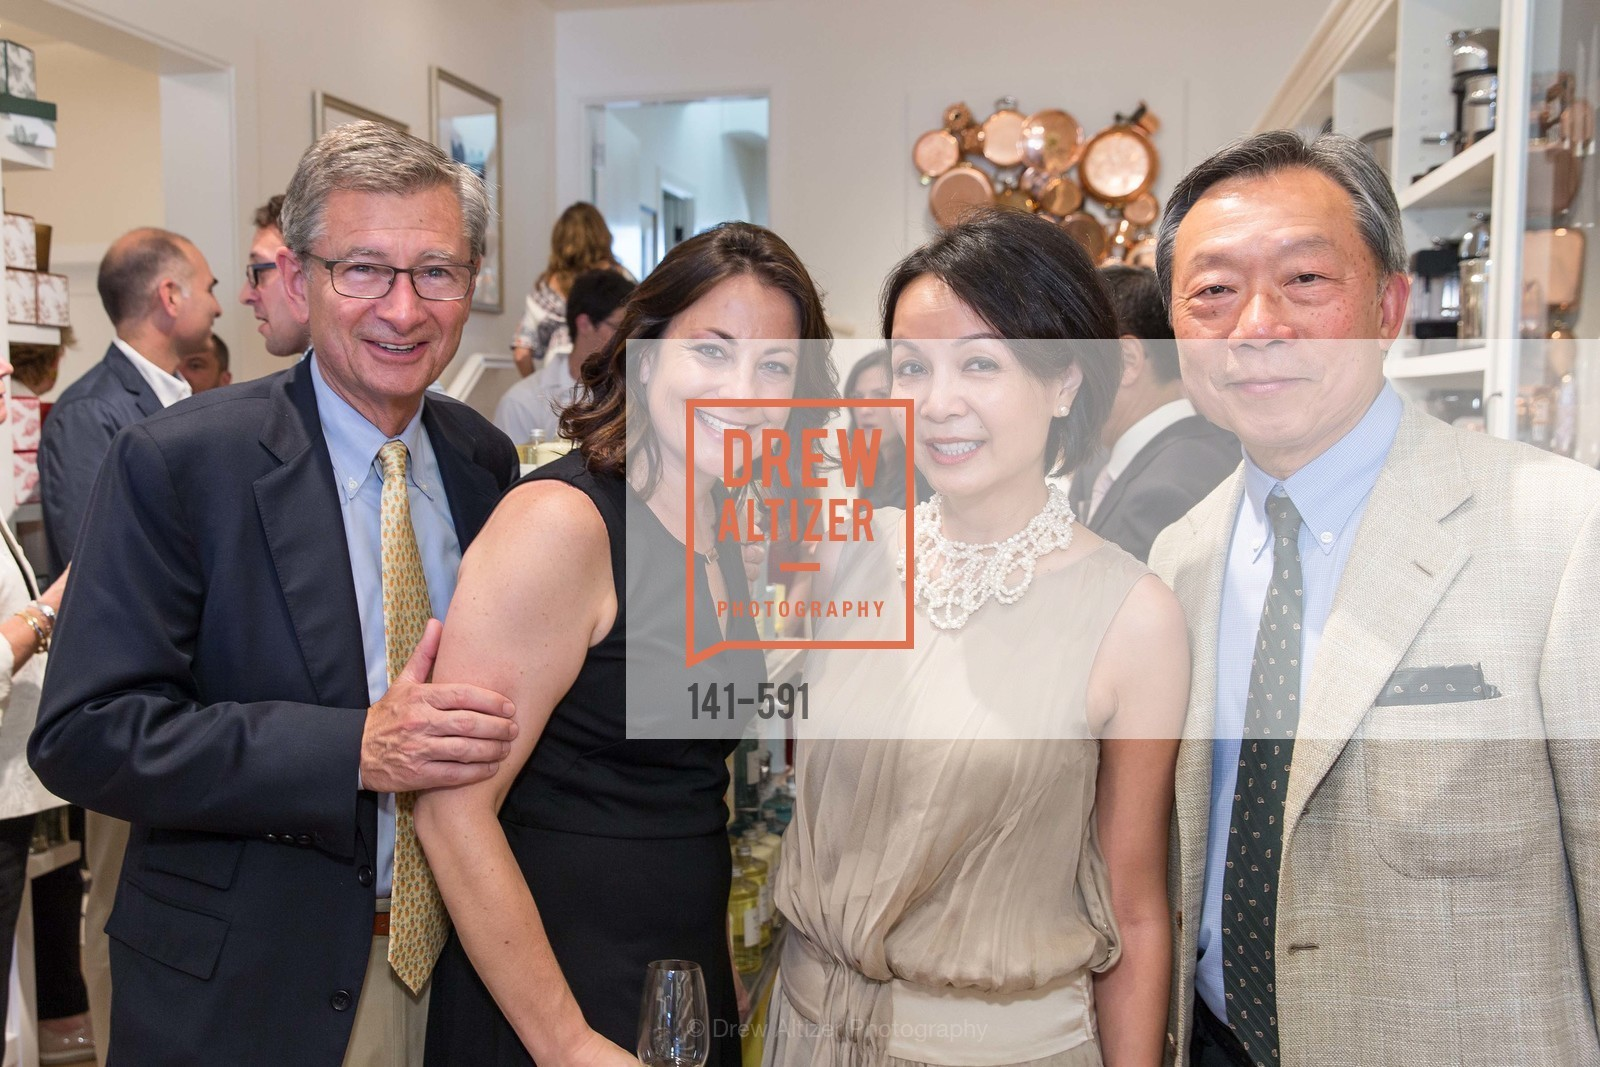 Pat Connolly, Michelle Foss, Helen Cheng, Stanley Cheng, CHUCK WILLIAMS Birthday Celebration, US, October 3rd, 2014,Drew Altizer, Drew Altizer Photography, full-service event agency, private events, San Francisco photographer, photographer California